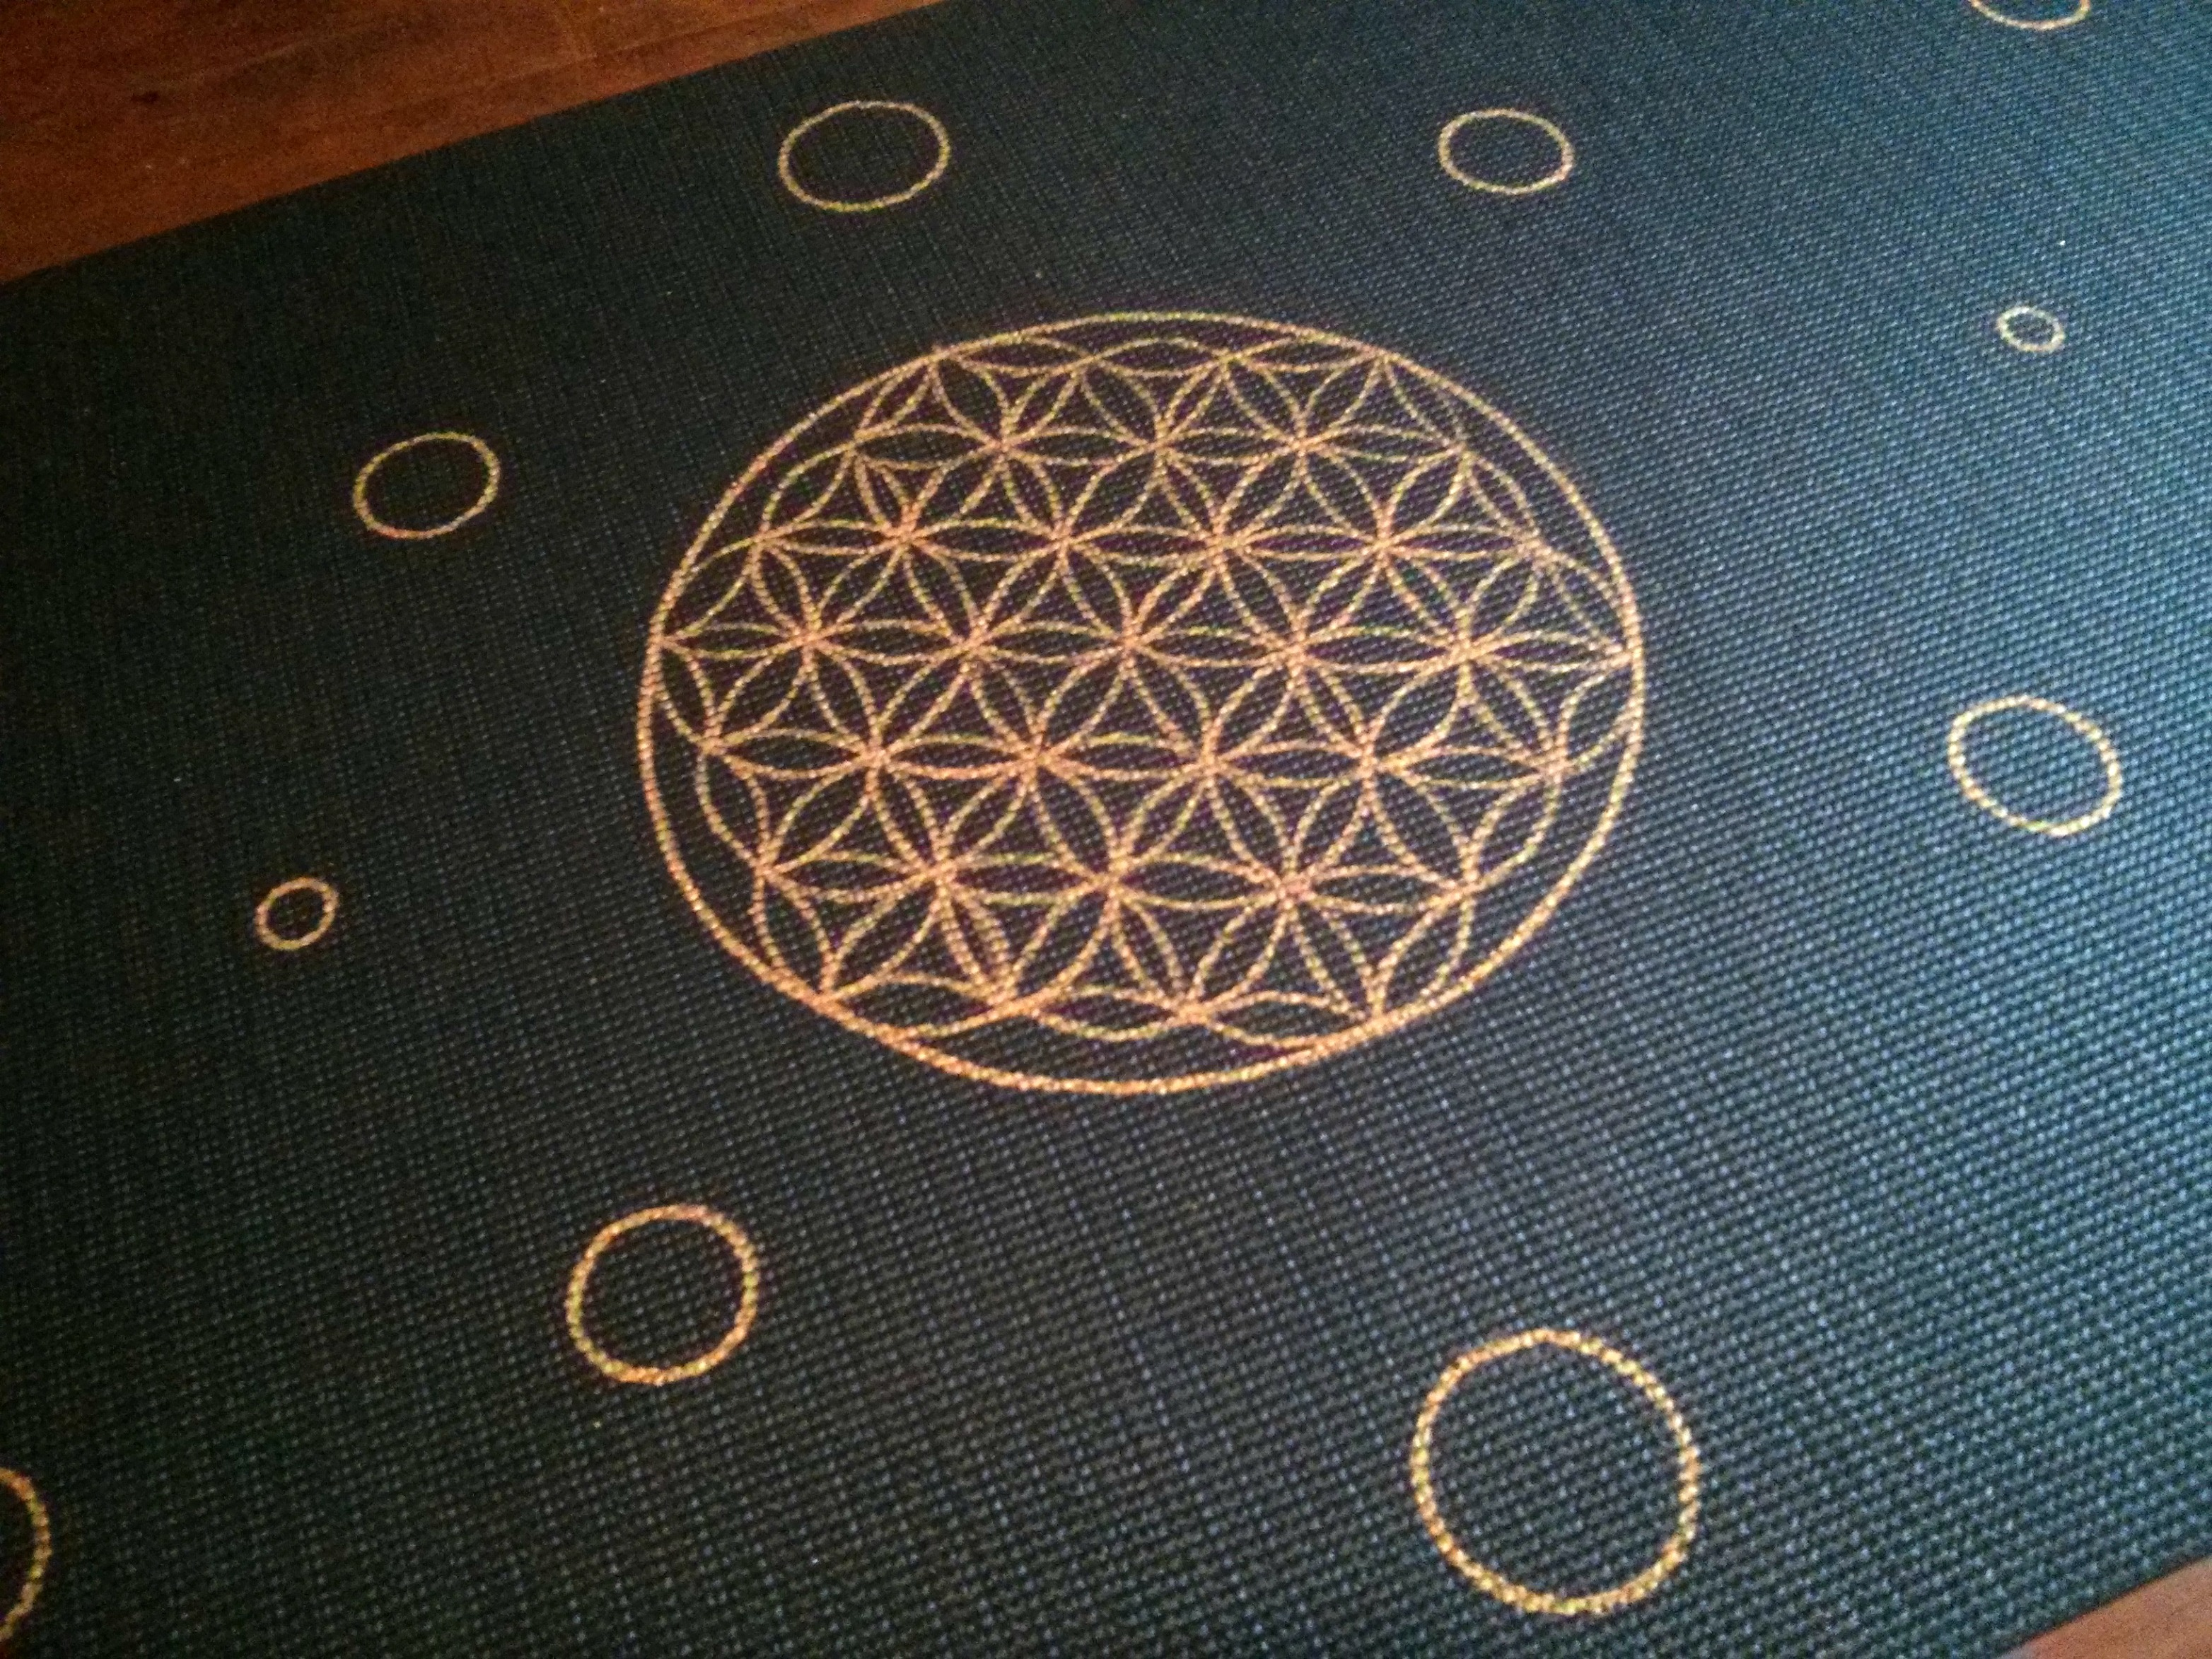 Flower of life close up.